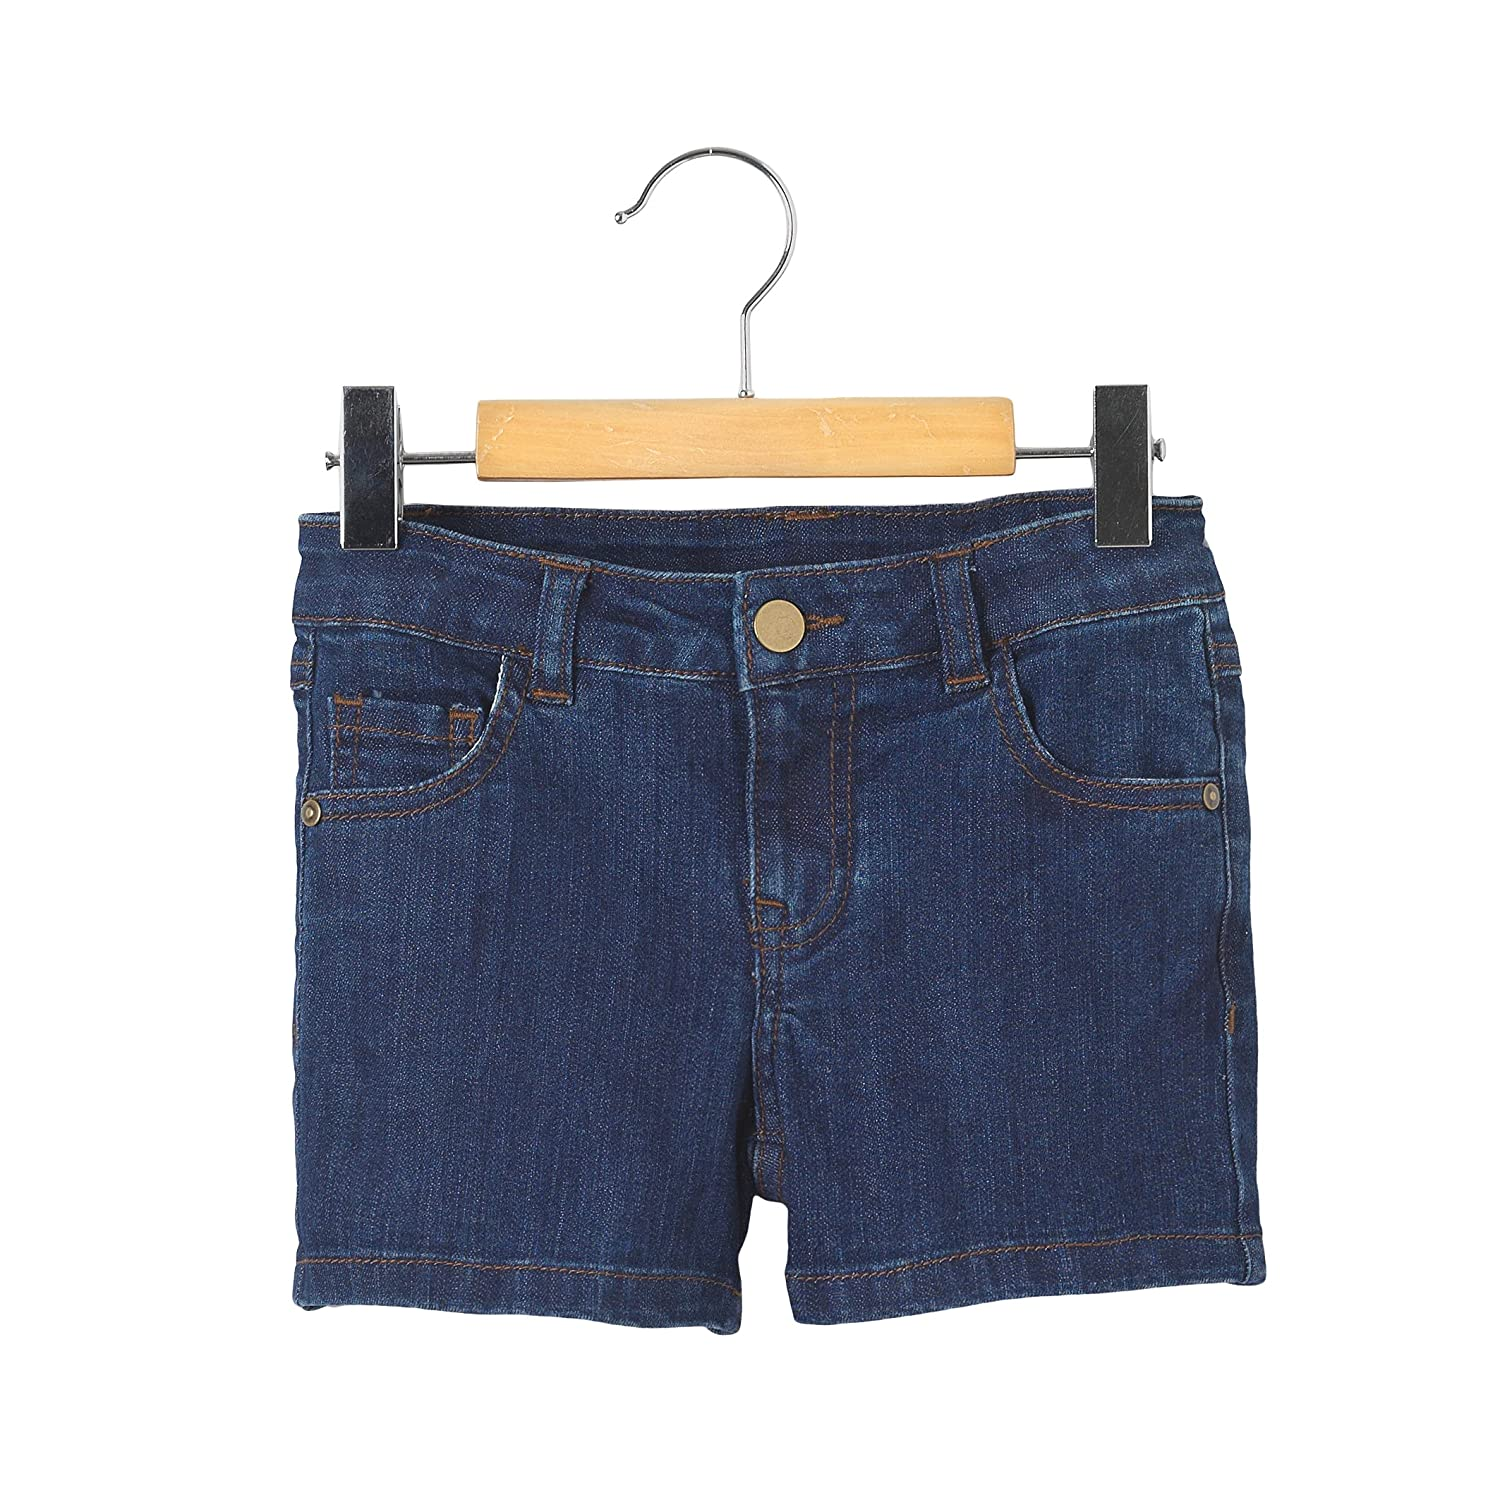 La Redoute Collections Big Girls Denim 5 Pocket Shorts 3-12 Years